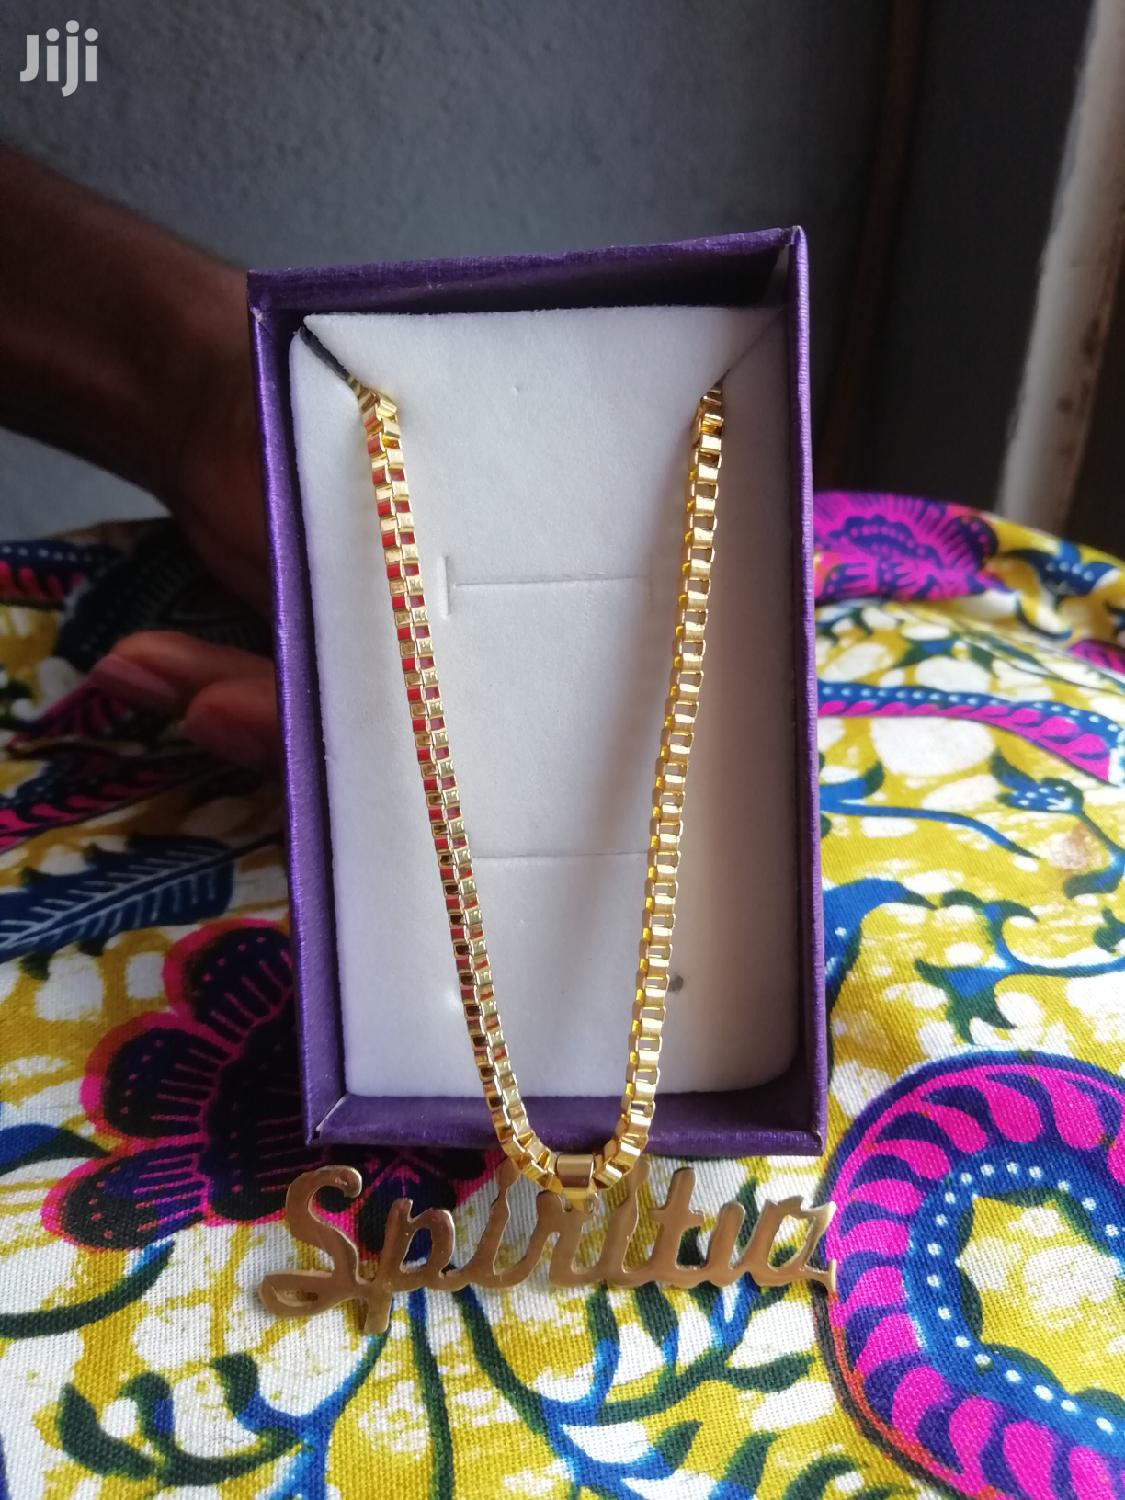 Customized Necklace | Jewelry for sale in Kotobabi, Greater Accra, Ghana